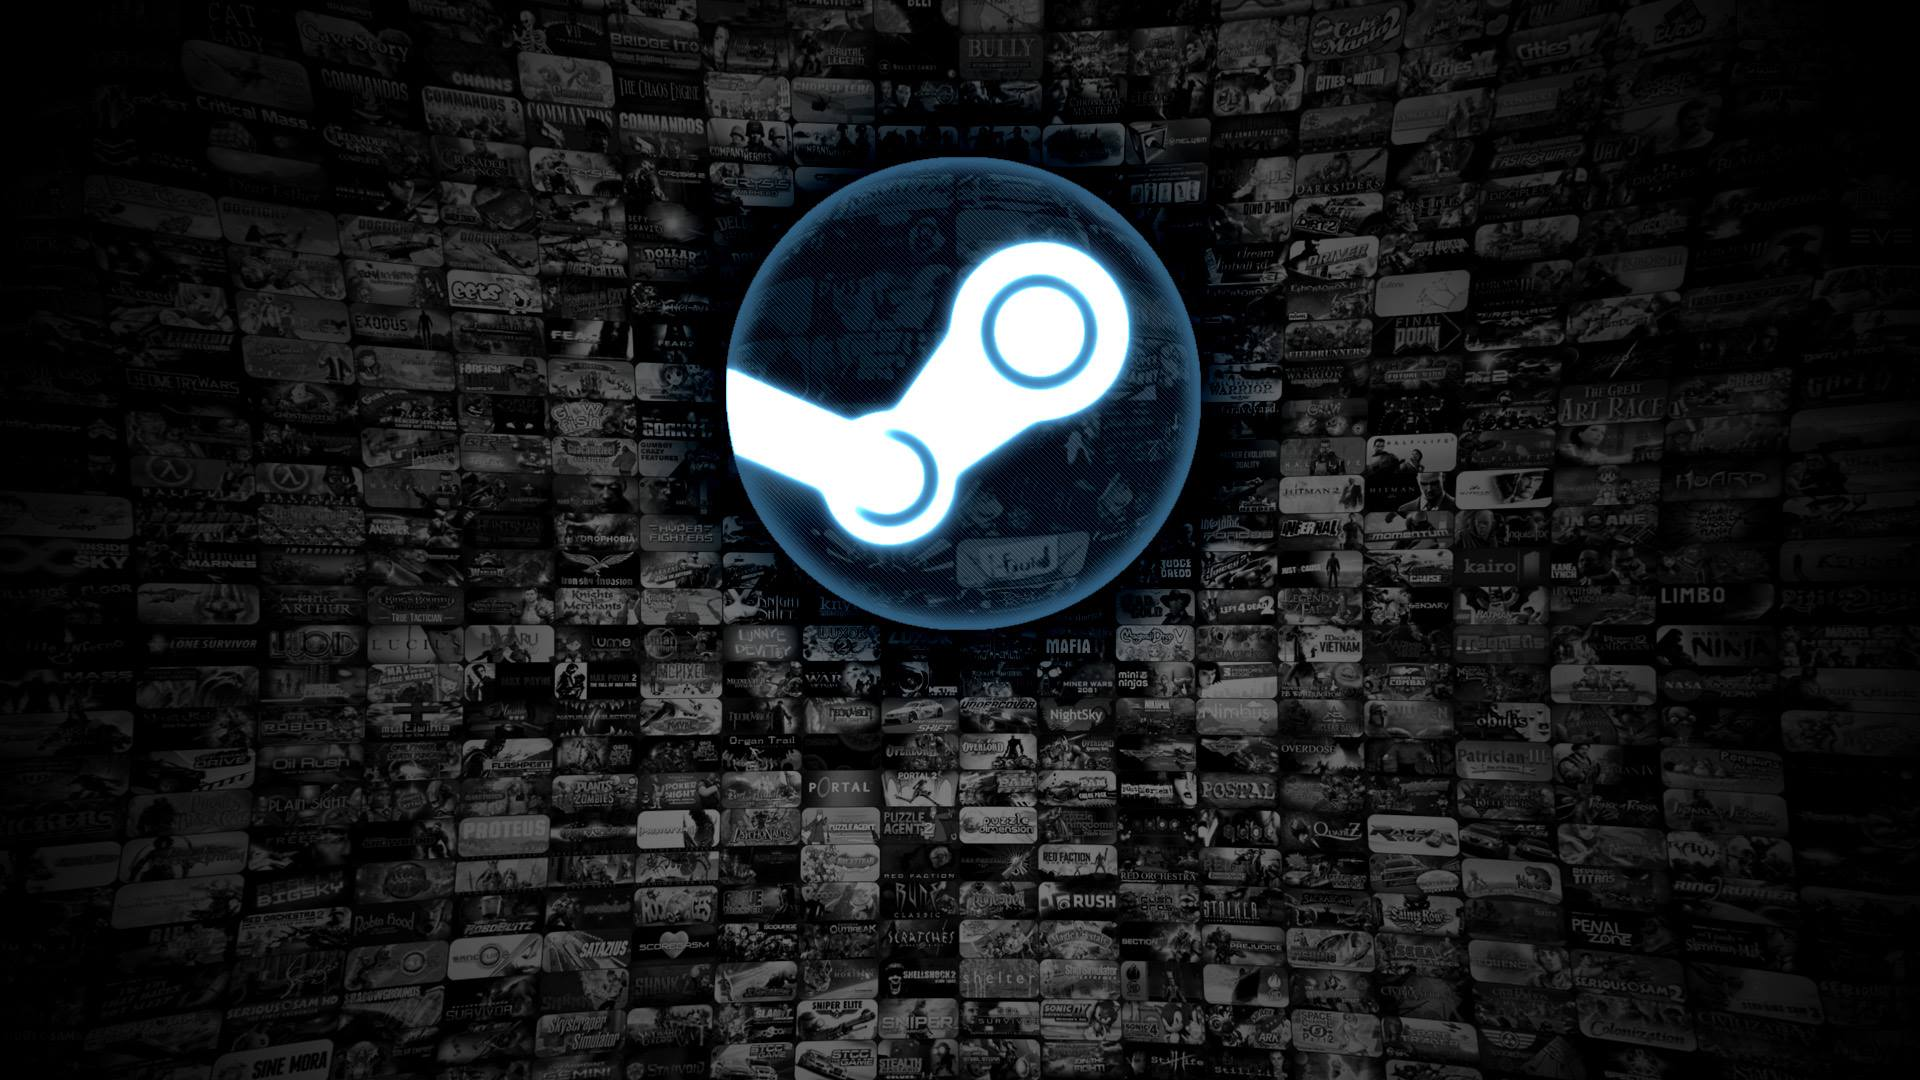 Valve may be looking to take on Twitch with streaming platform Steam TV